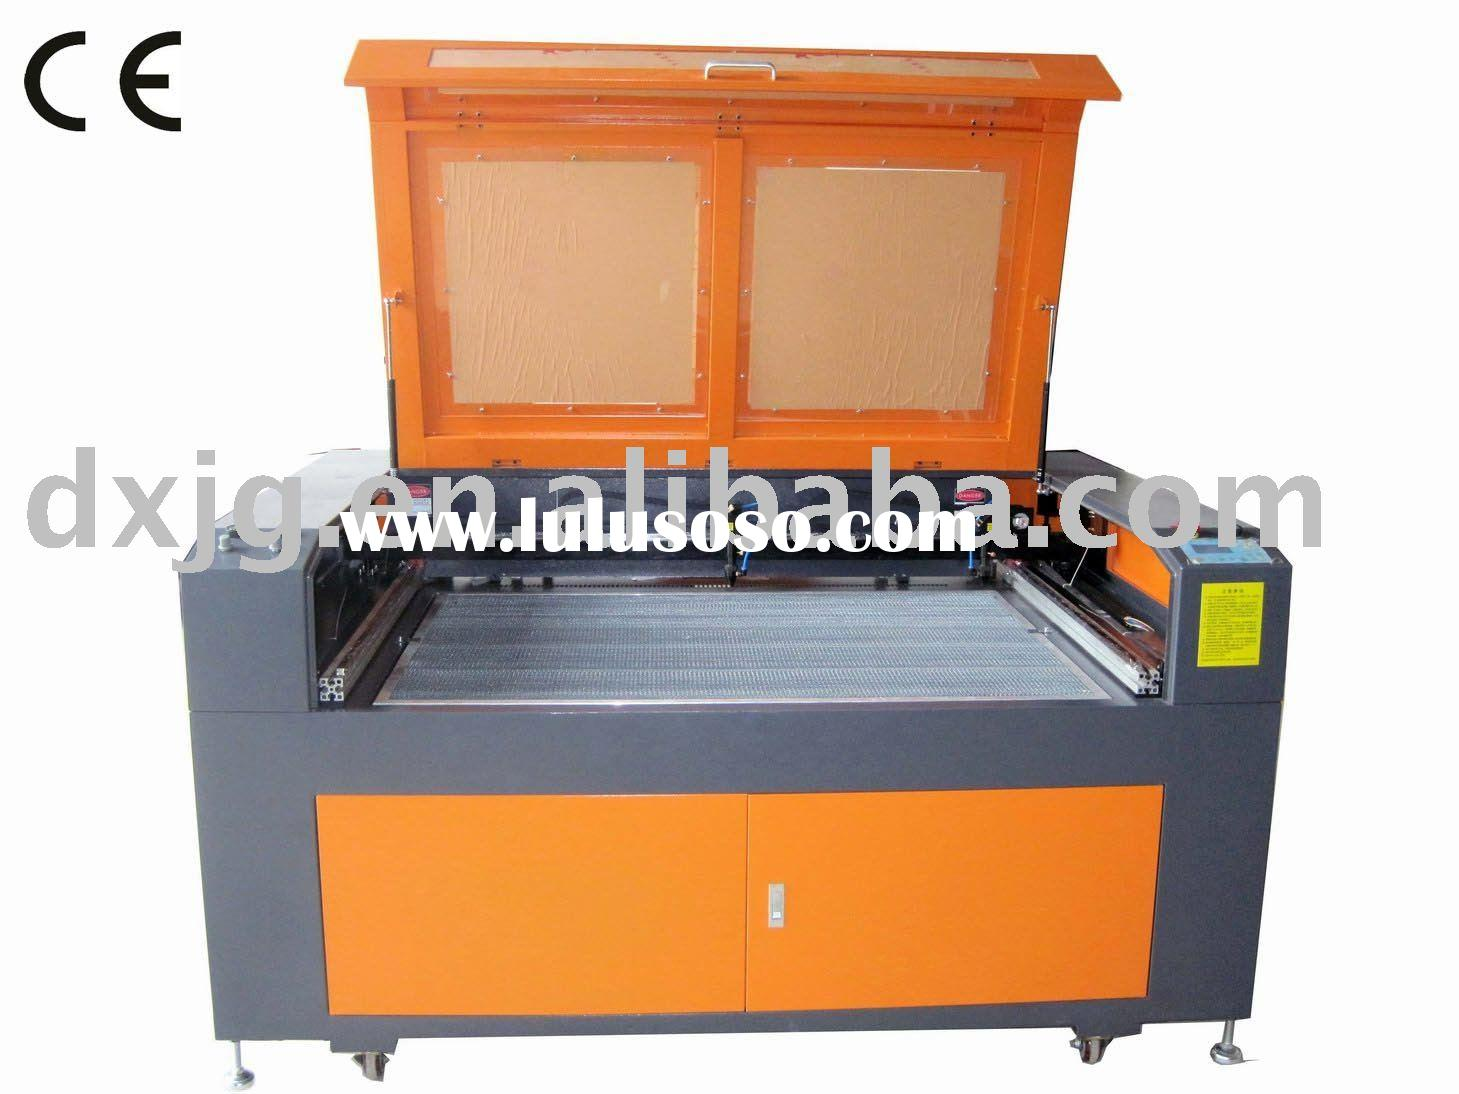 DX-1290S Laser cutting Machine with two laser heads